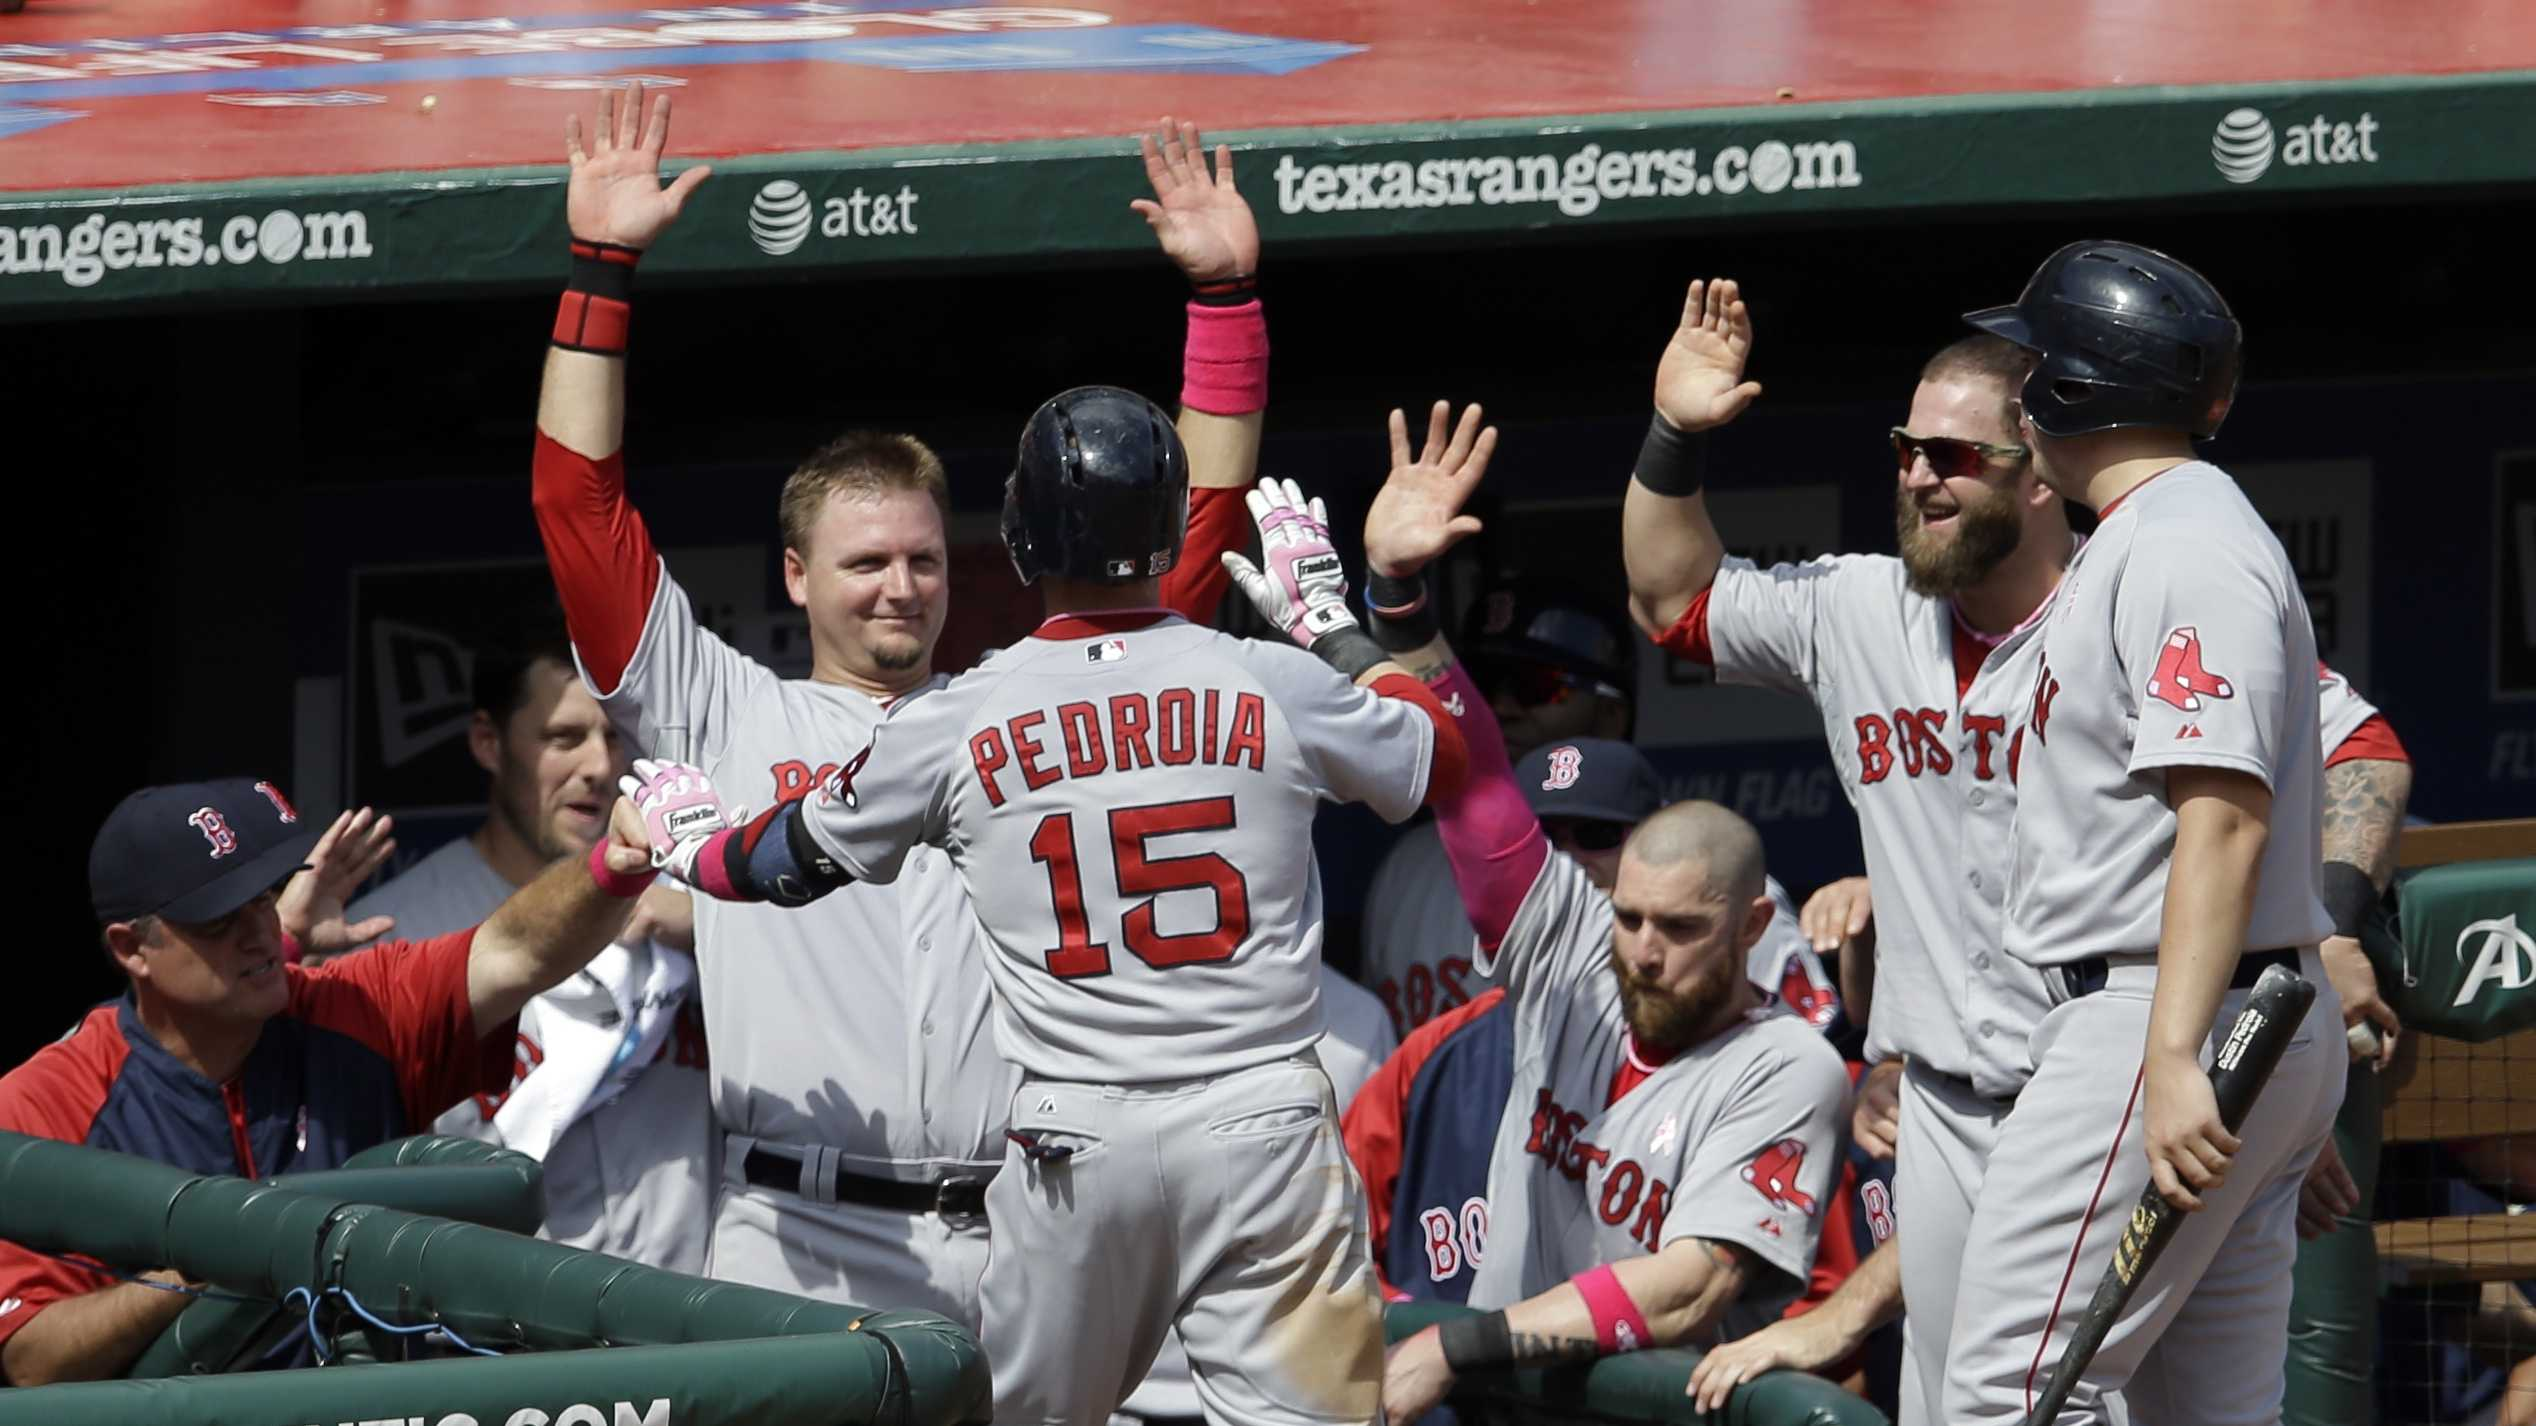 Boston Red Sox's Dustin Pedroia (15) is congratulated at the top of the dugout by manager John Farrell, left,catcher A.J. Pierzynski and Mike Napoli, second from right, following his solo home run off Texas Rangers' Robbie Ross in the seventh inning of a baseball game on Sunday, May 11, 2014, in Arlington, Texas. (AP Photo/Tony Gutierrez)